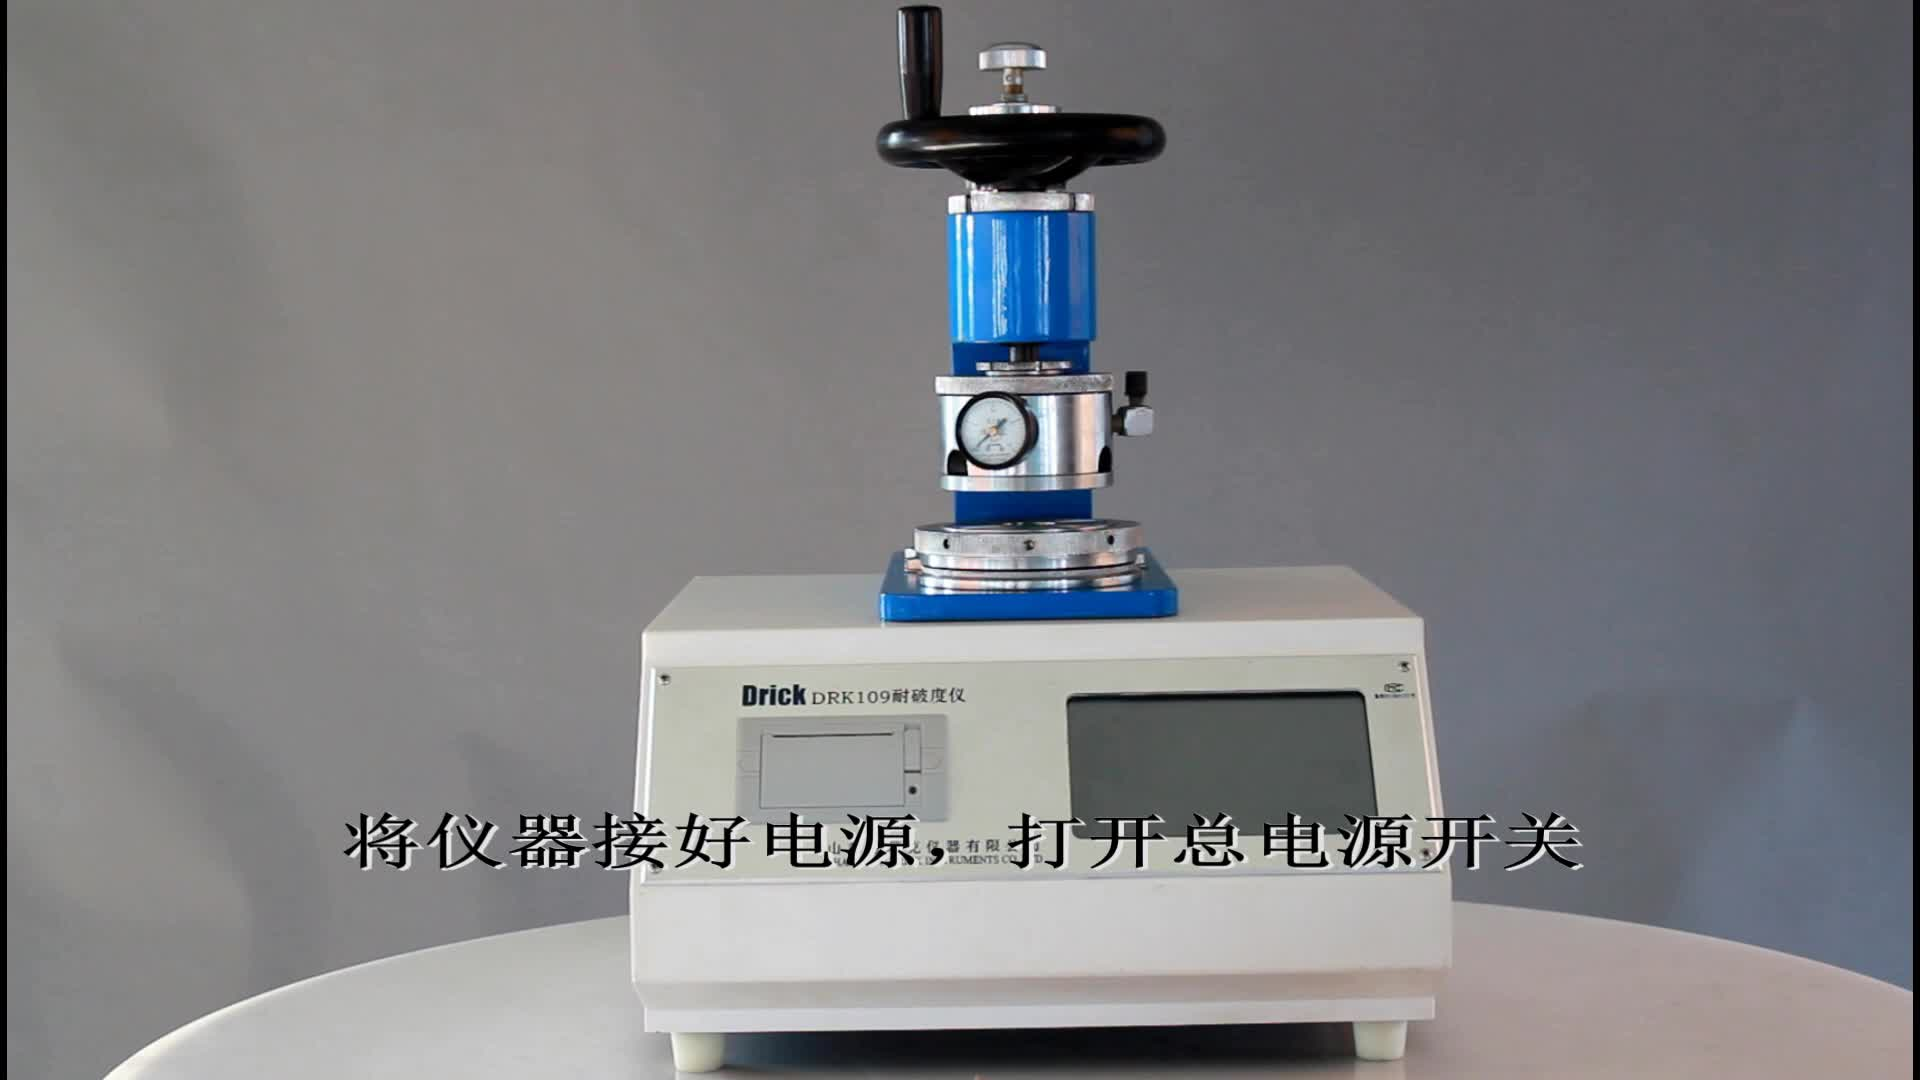 """Burst Tester """"Mullen type"""" With Touch screen + Software System Included"""